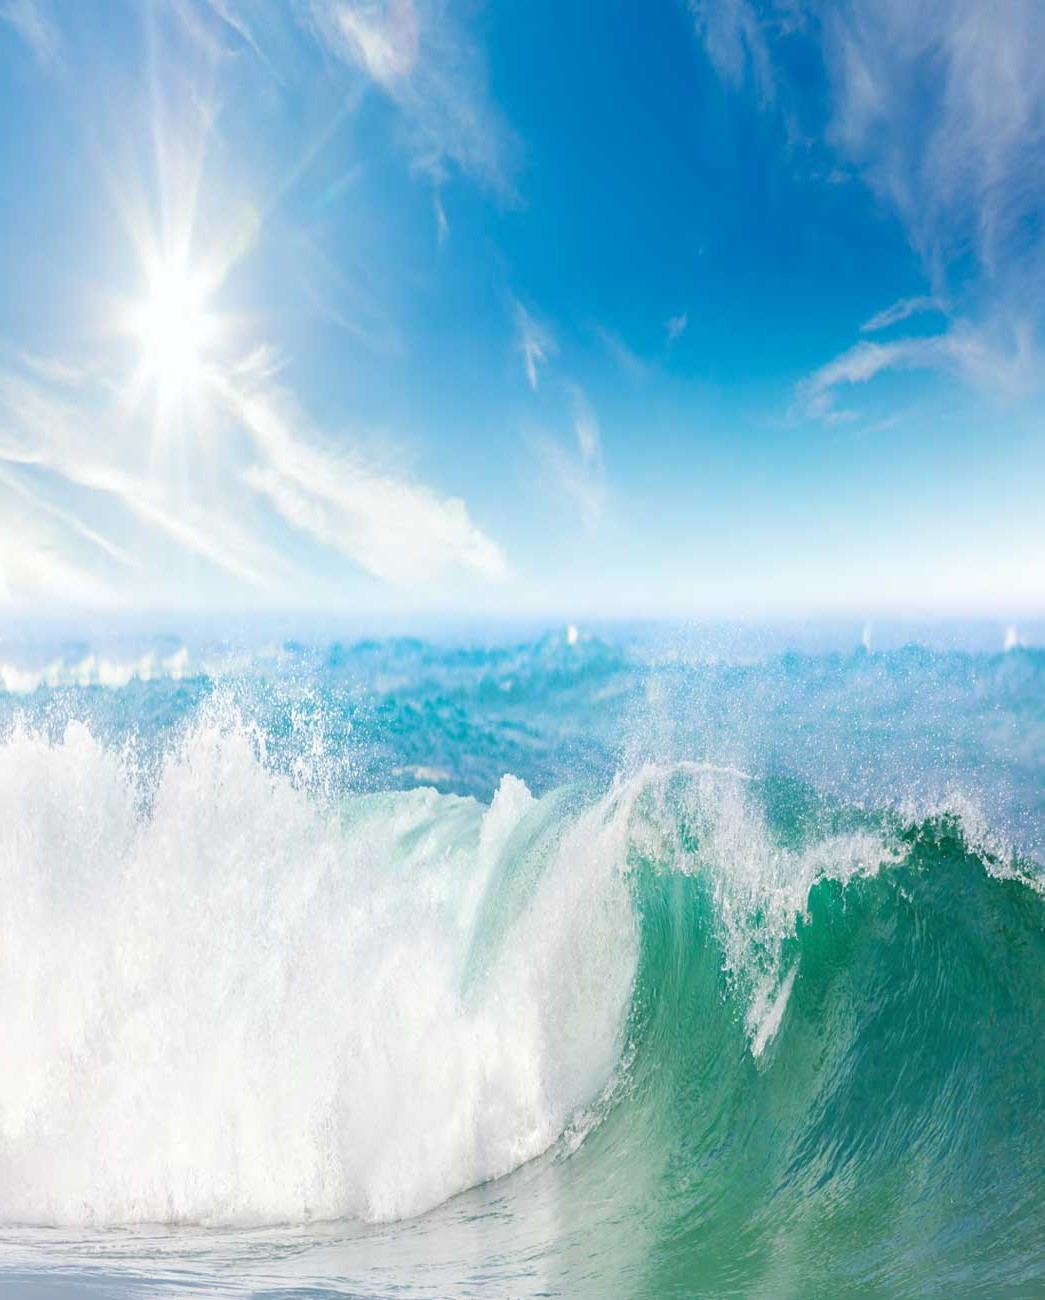 Sea spray aerosol scatters sunlight and plays a role in forming clouds, therefore having a major effect on the climate.